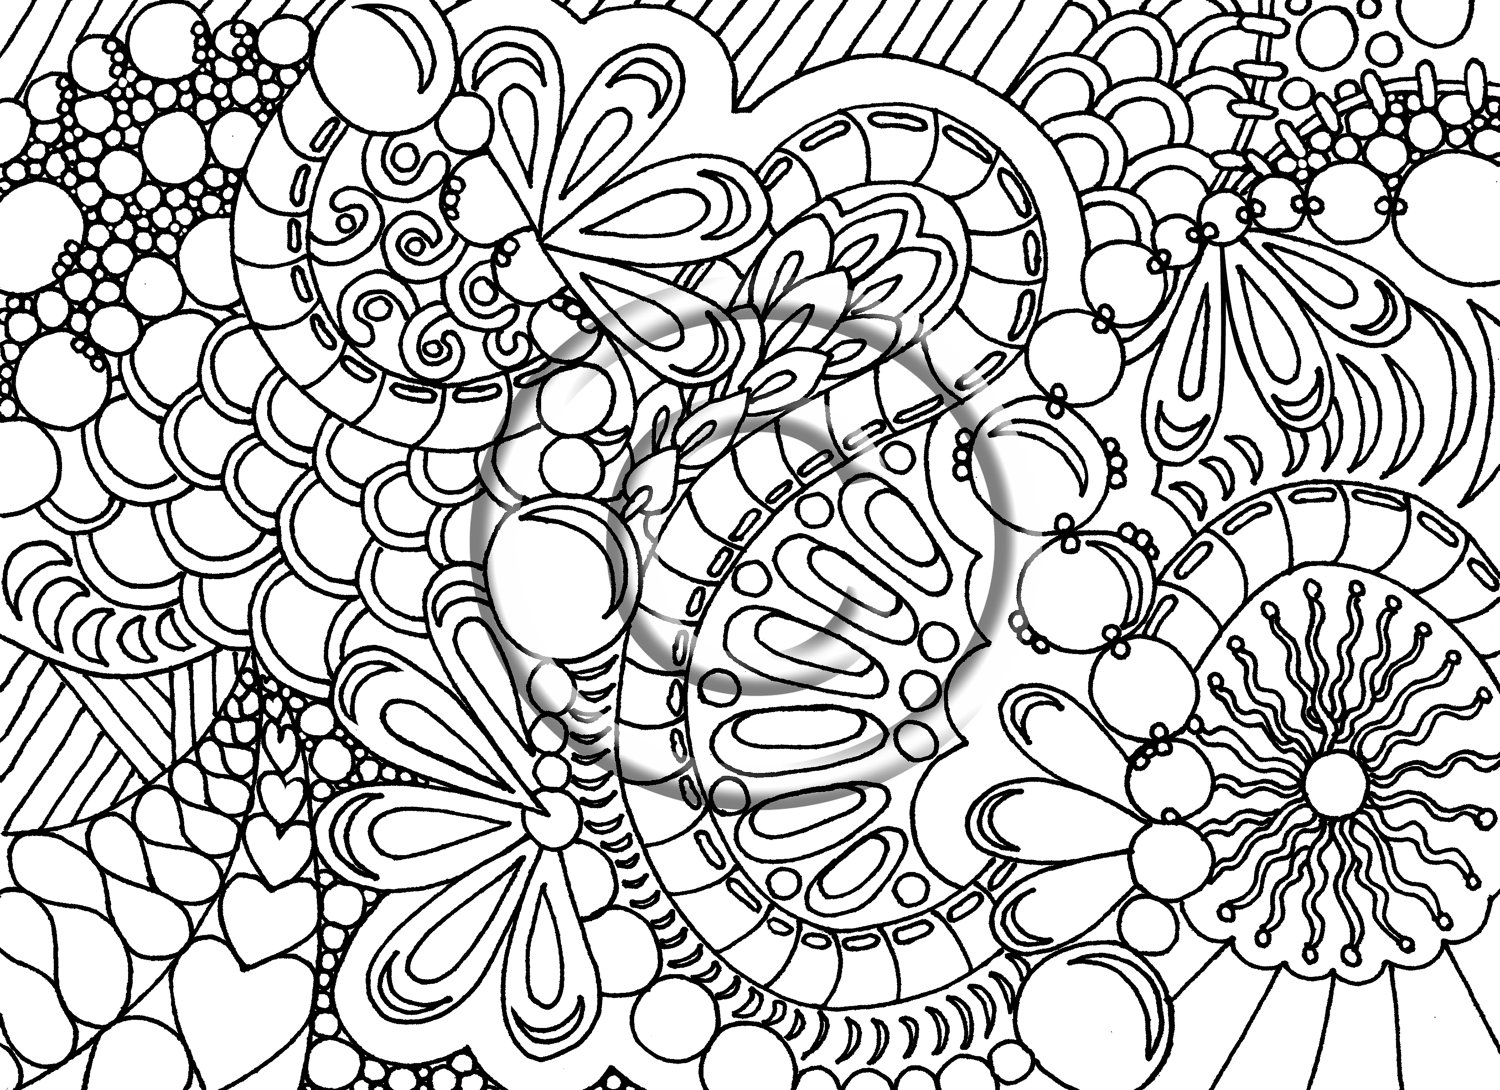 Abstract Drawing For Kids at GetDrawings.com | Free for personal use ...